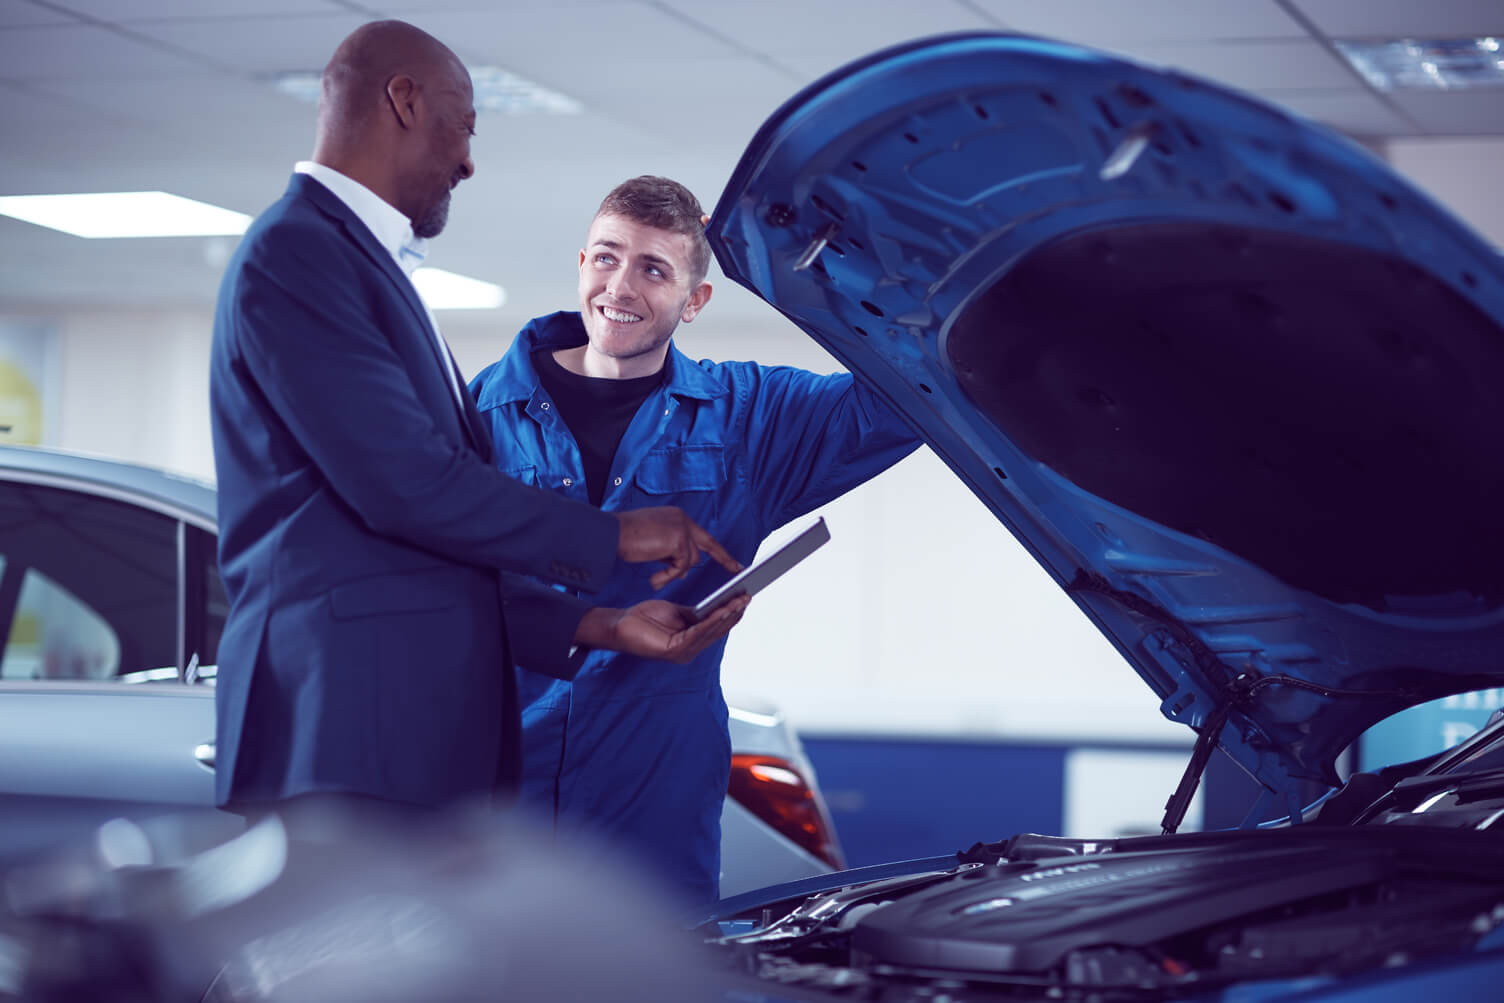 Customer and mechanic looking under the hood of a car.